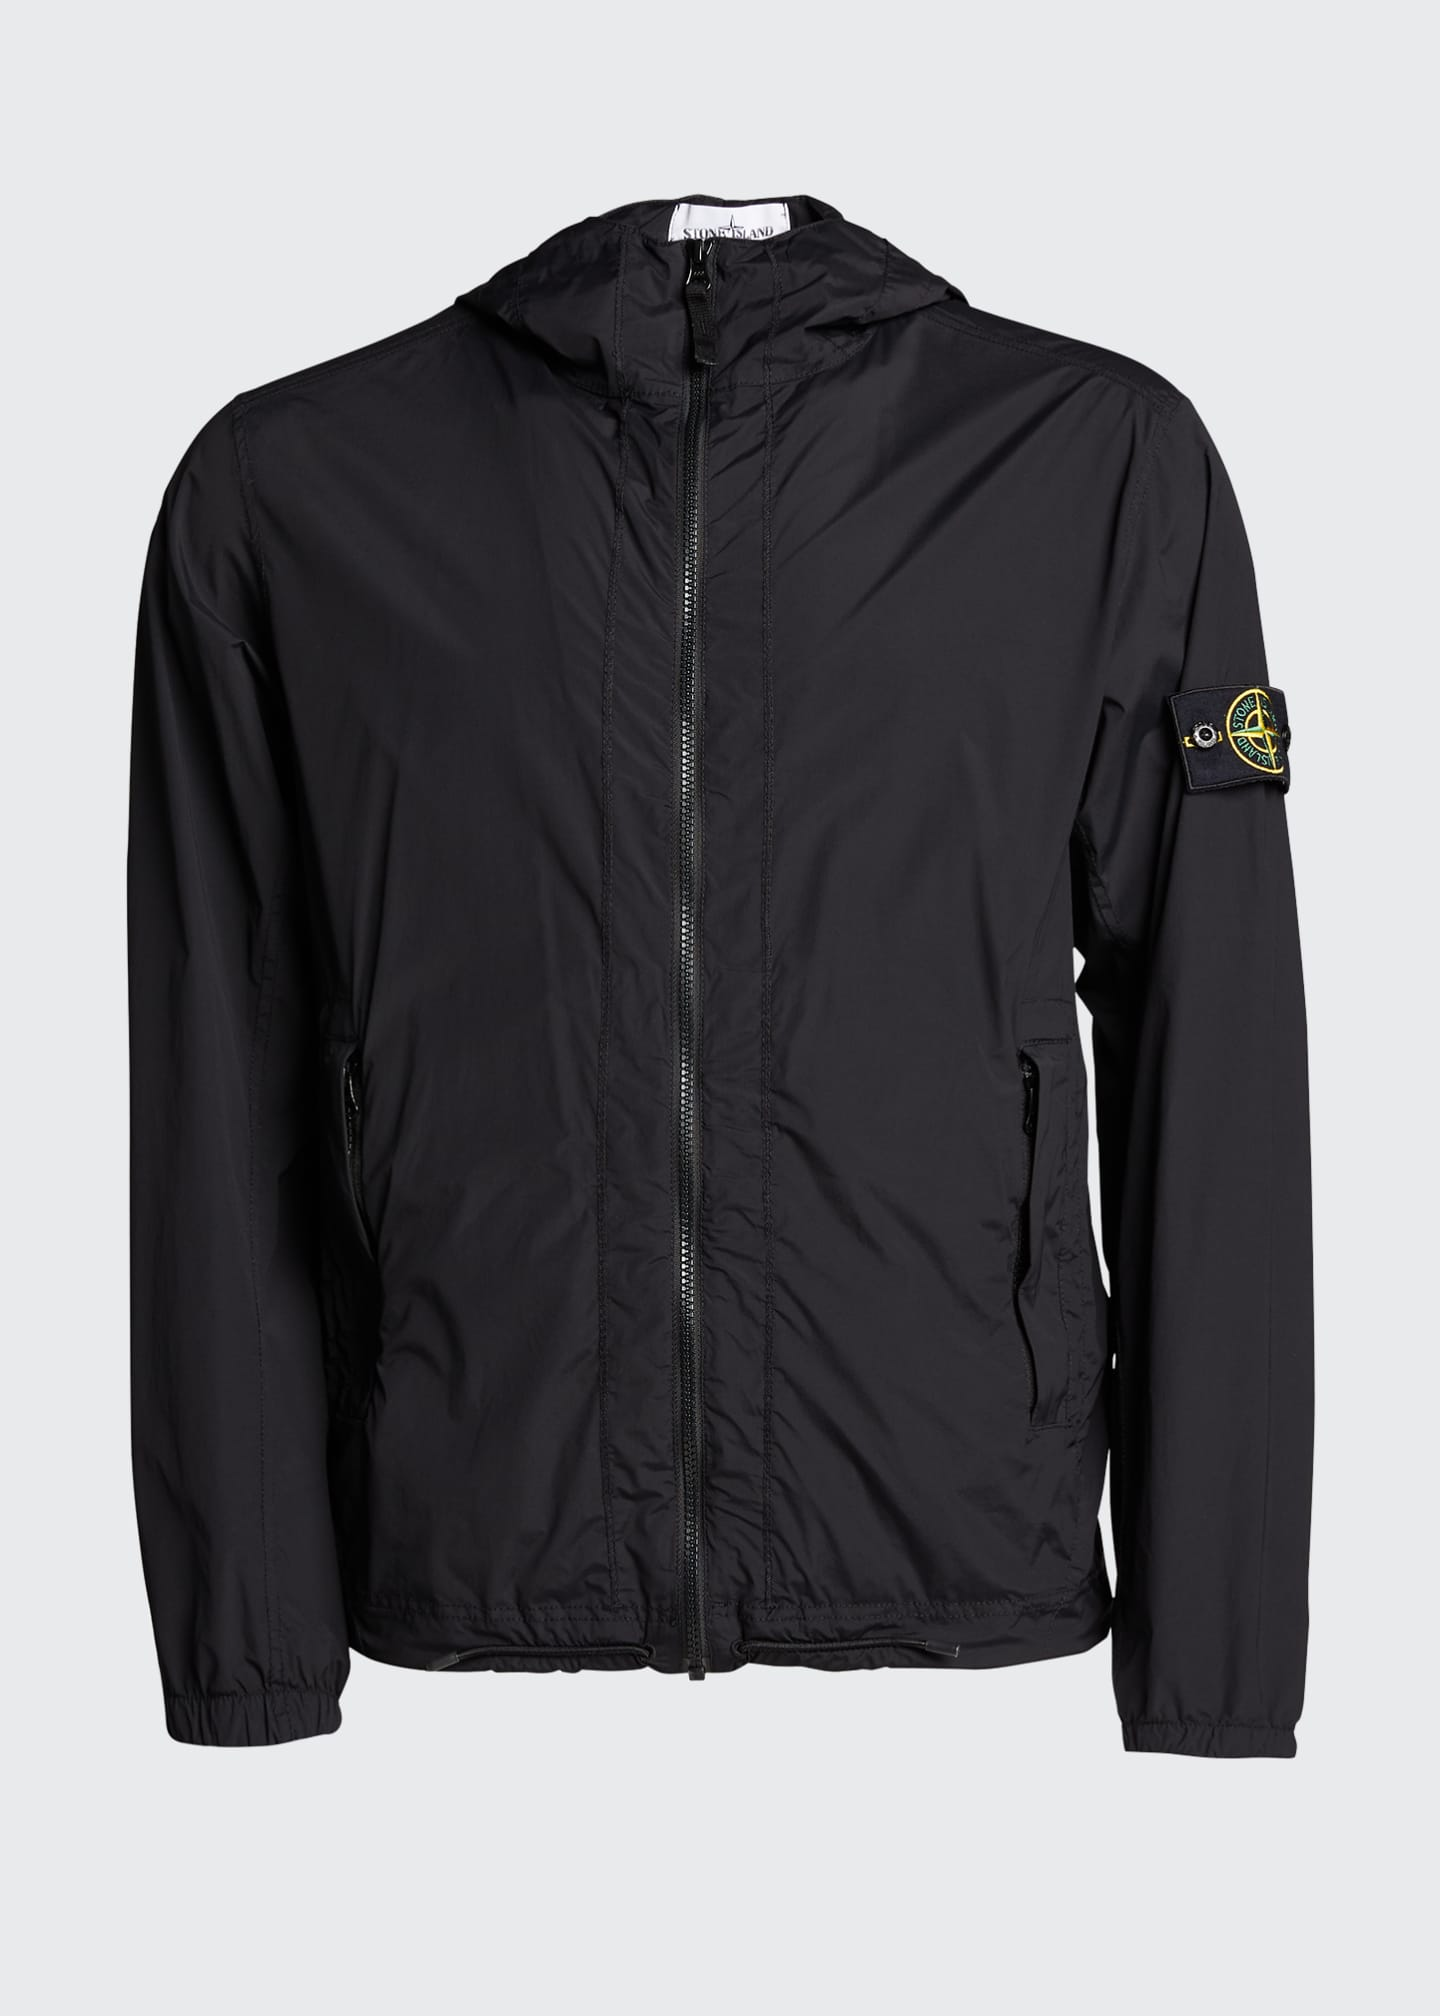 Image 1 of 1: Men's Packable Hooded Jacket